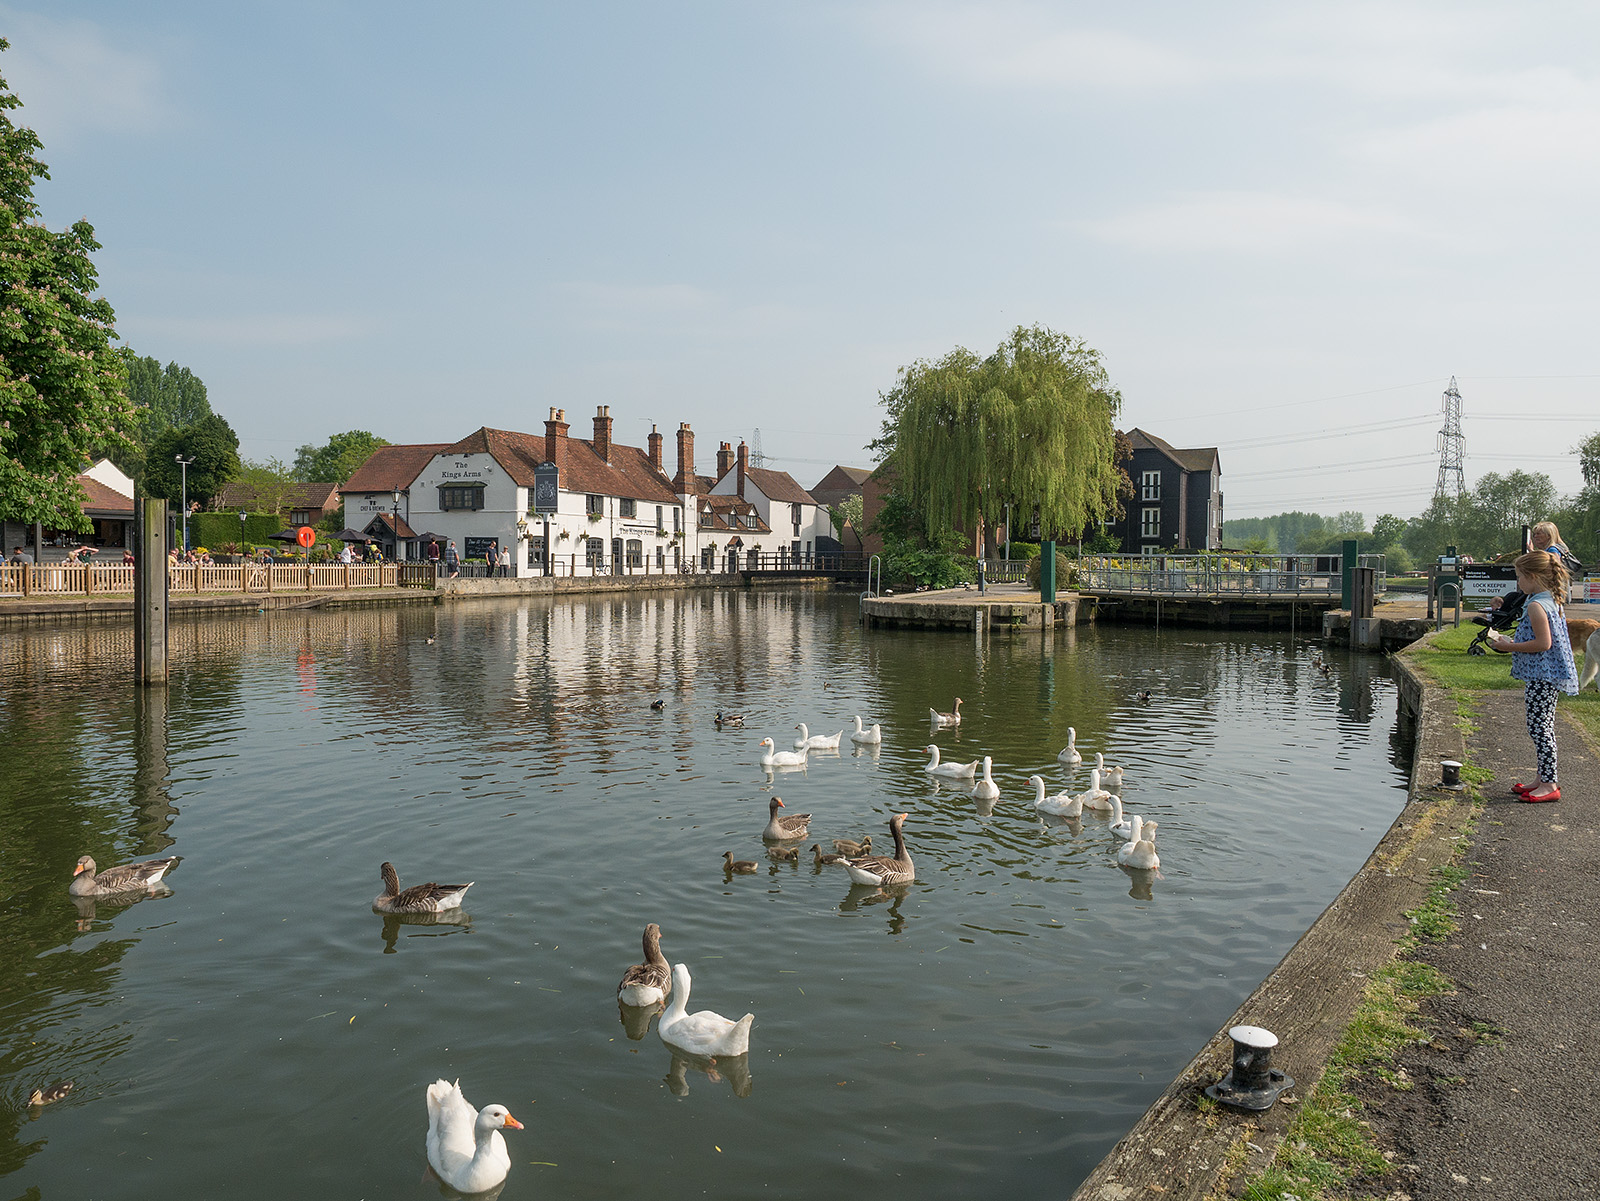 View across Sandford lock to the Kings Head pub